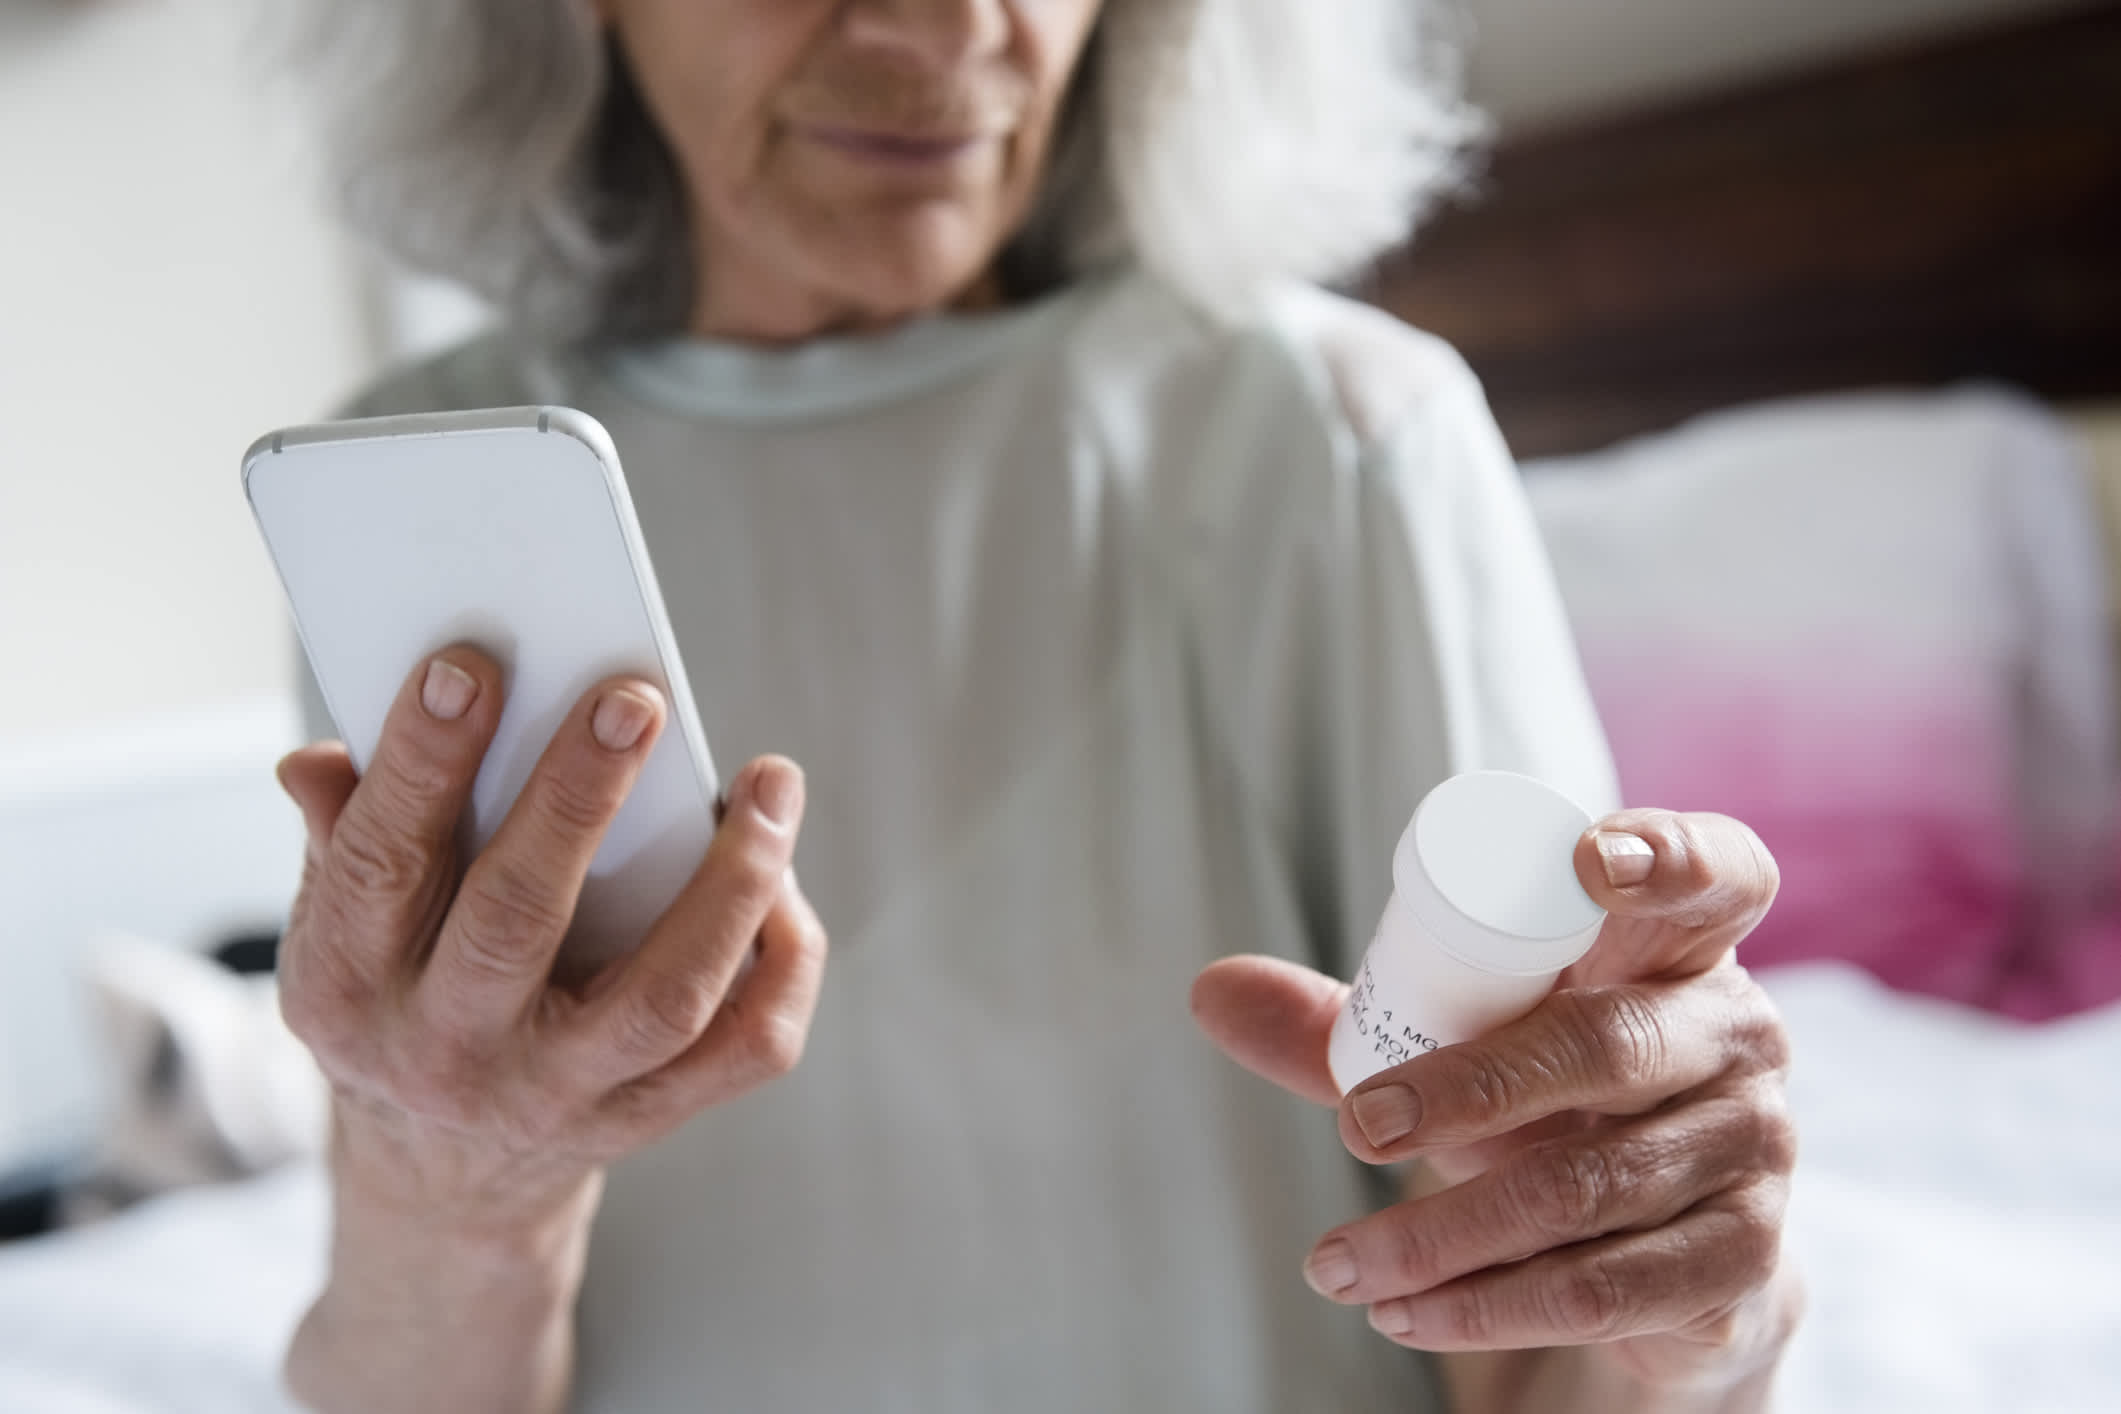 Artificial intelligence is helping to transform the way elderly people are cared for